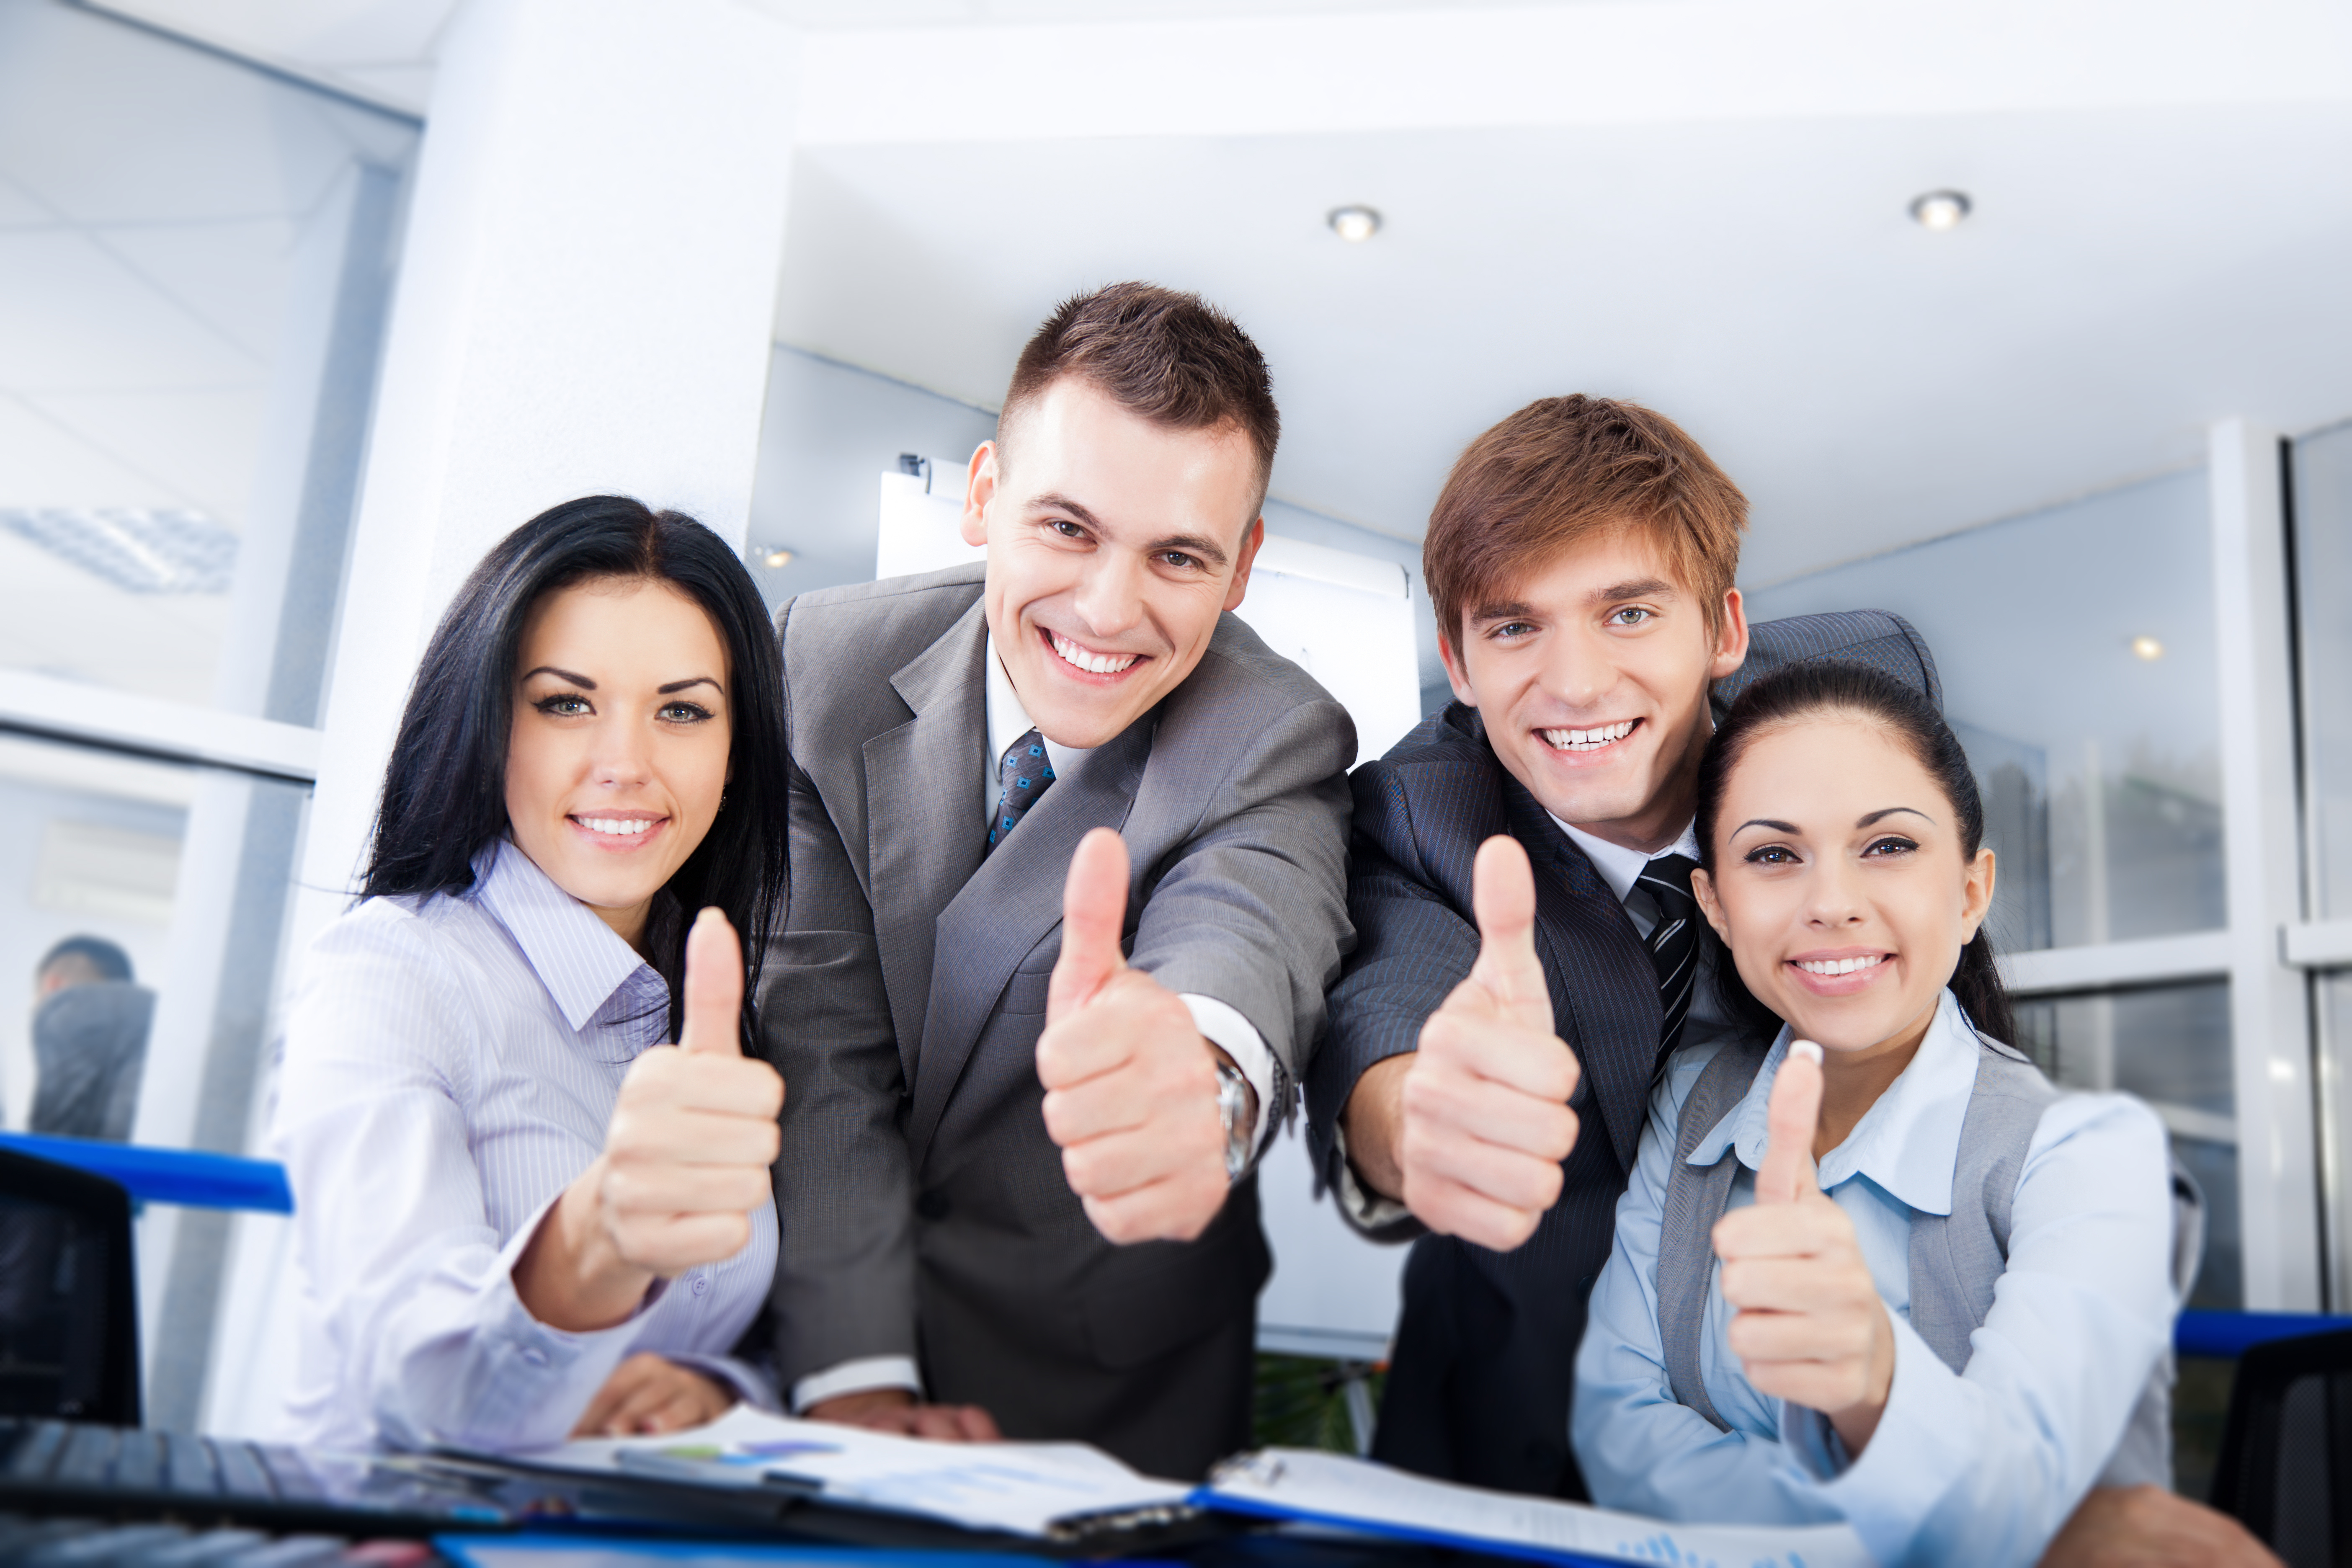 Happy Business People - Thumbs Up.jpg